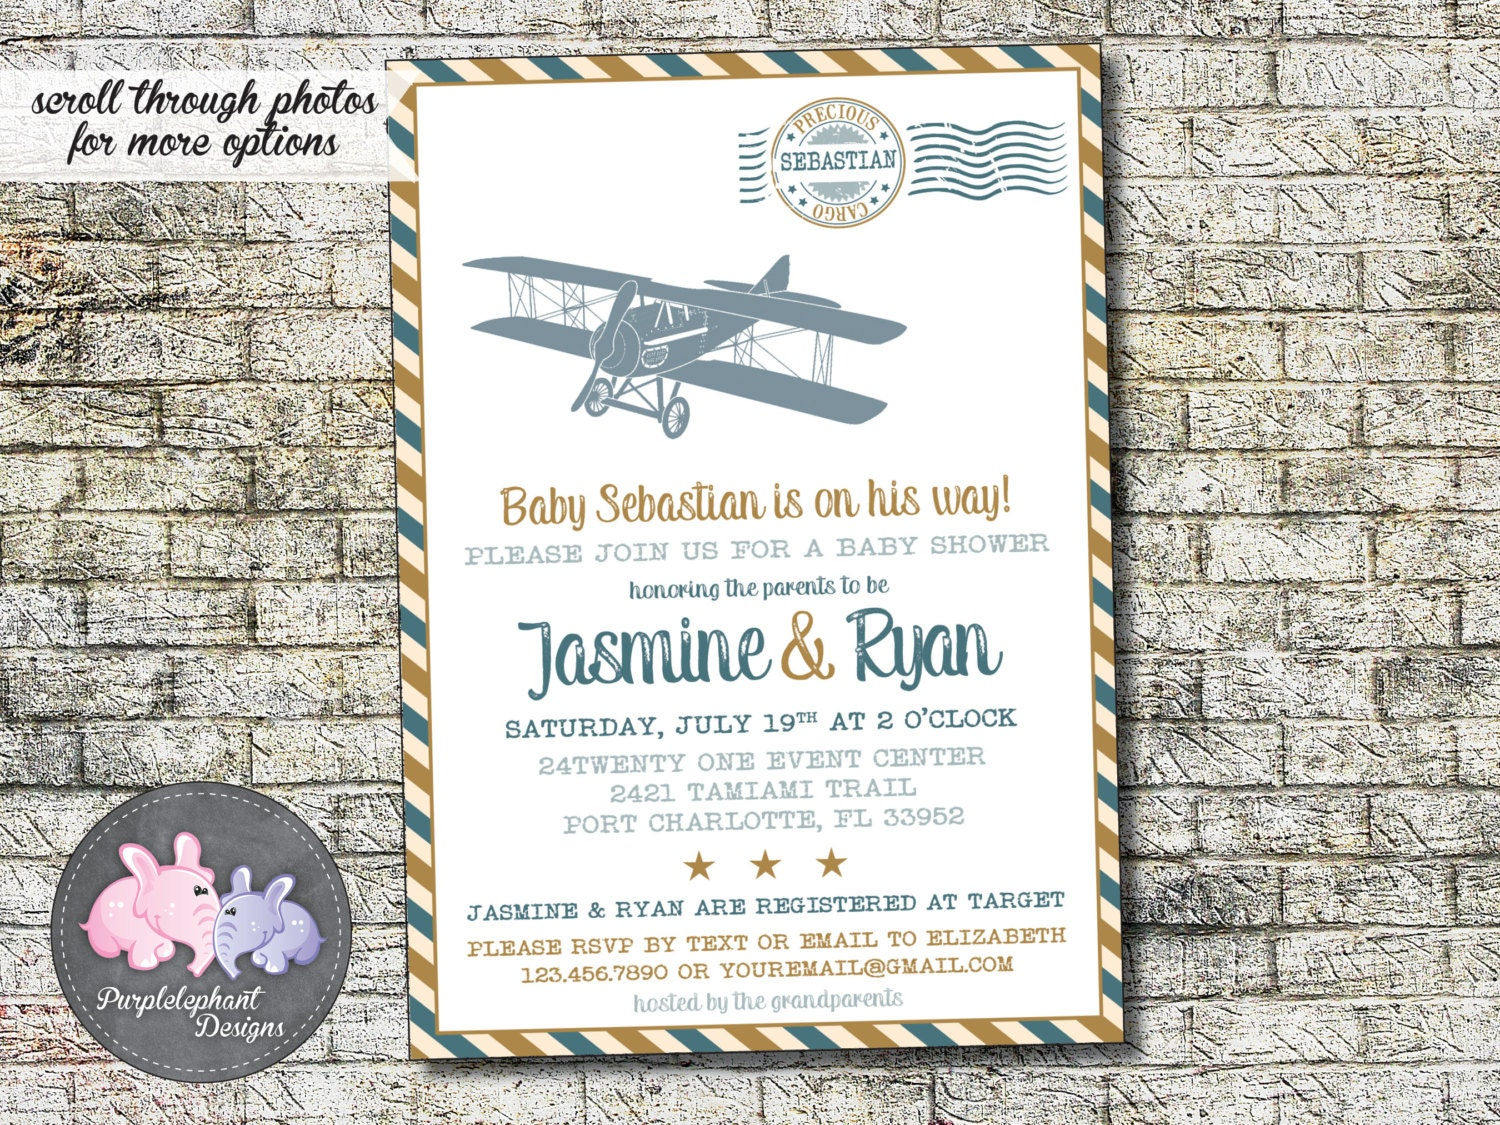 Precious Cargo Baby Shower Invitation Airplane Baby Shower